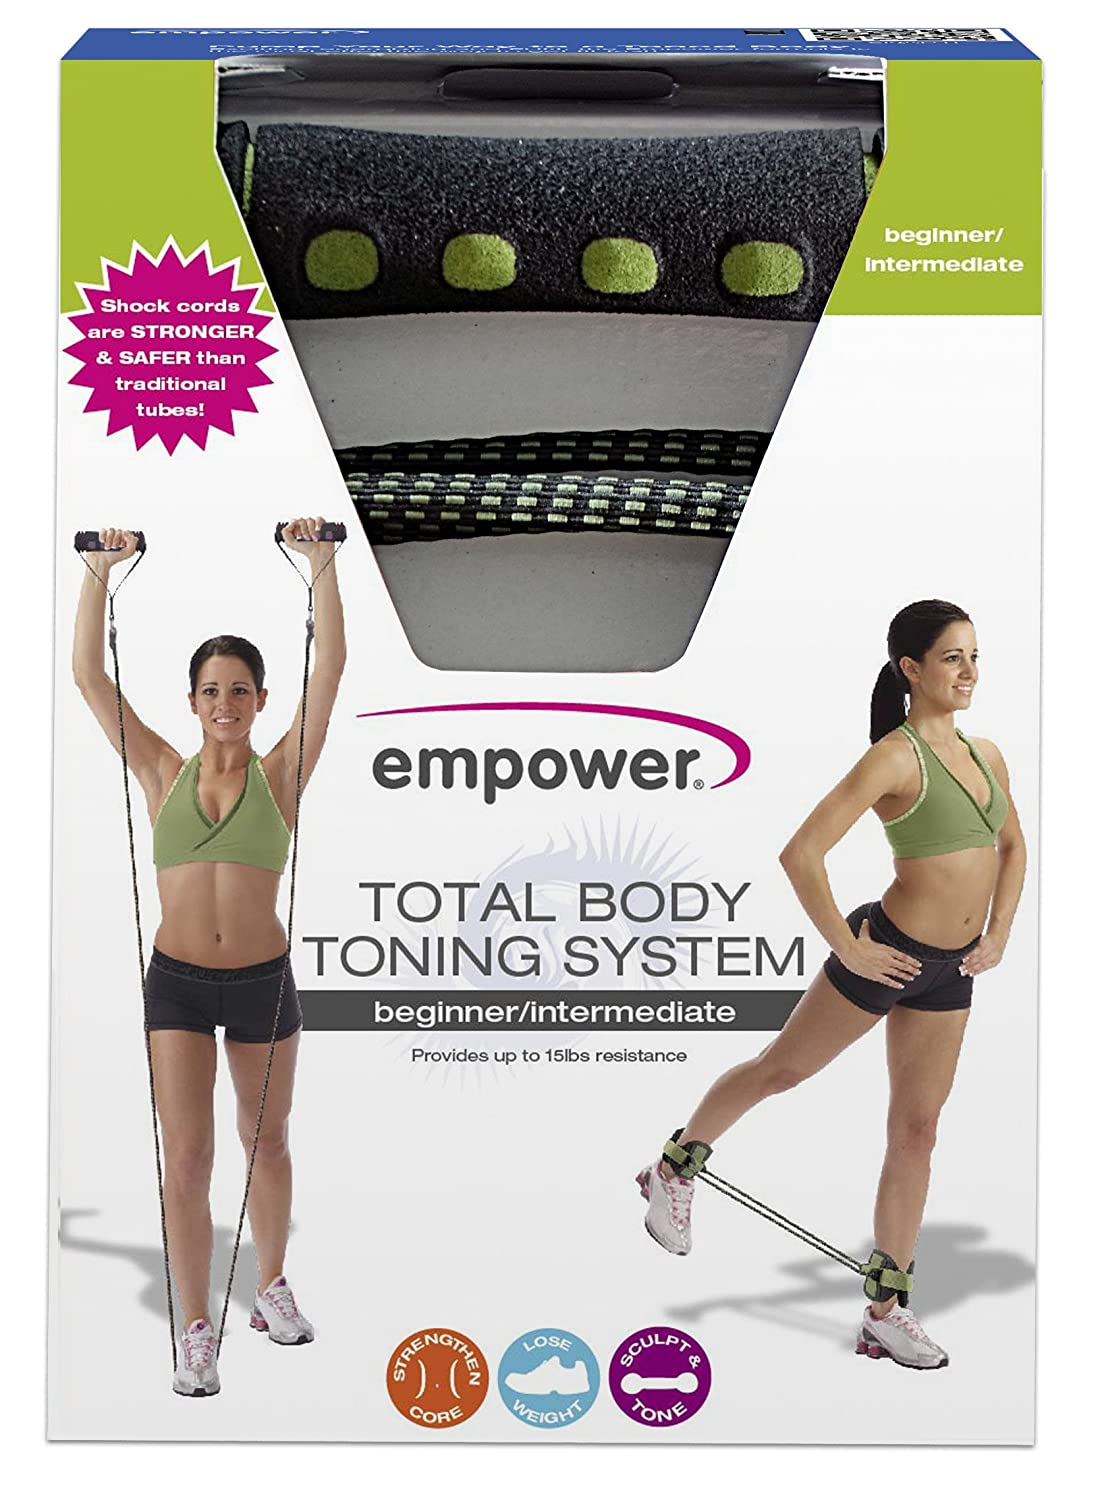 Amazon.com : Empower Deluxe Total Body Beginner/Intermediate Toning System, Black/Green : Exercise Bands : Sports & Outdoors